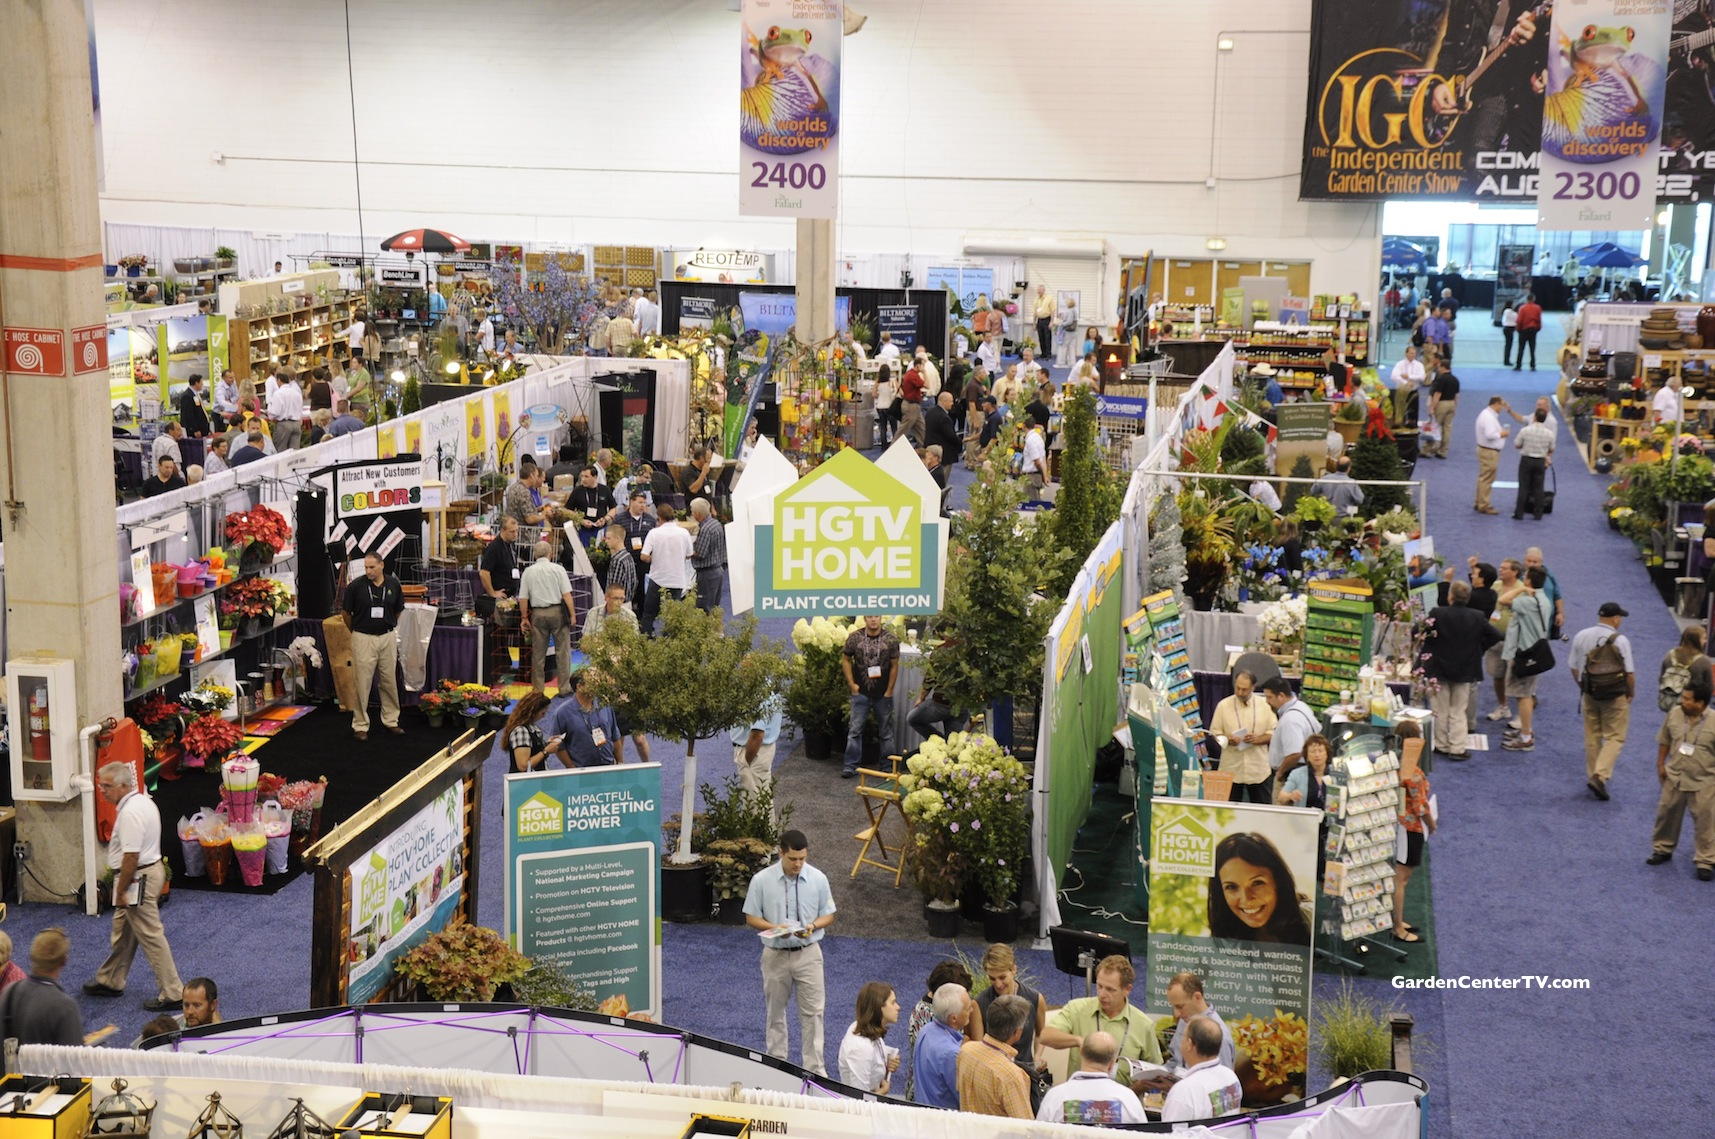 Independent Garden Center Show Convention Hall Chicago Garden